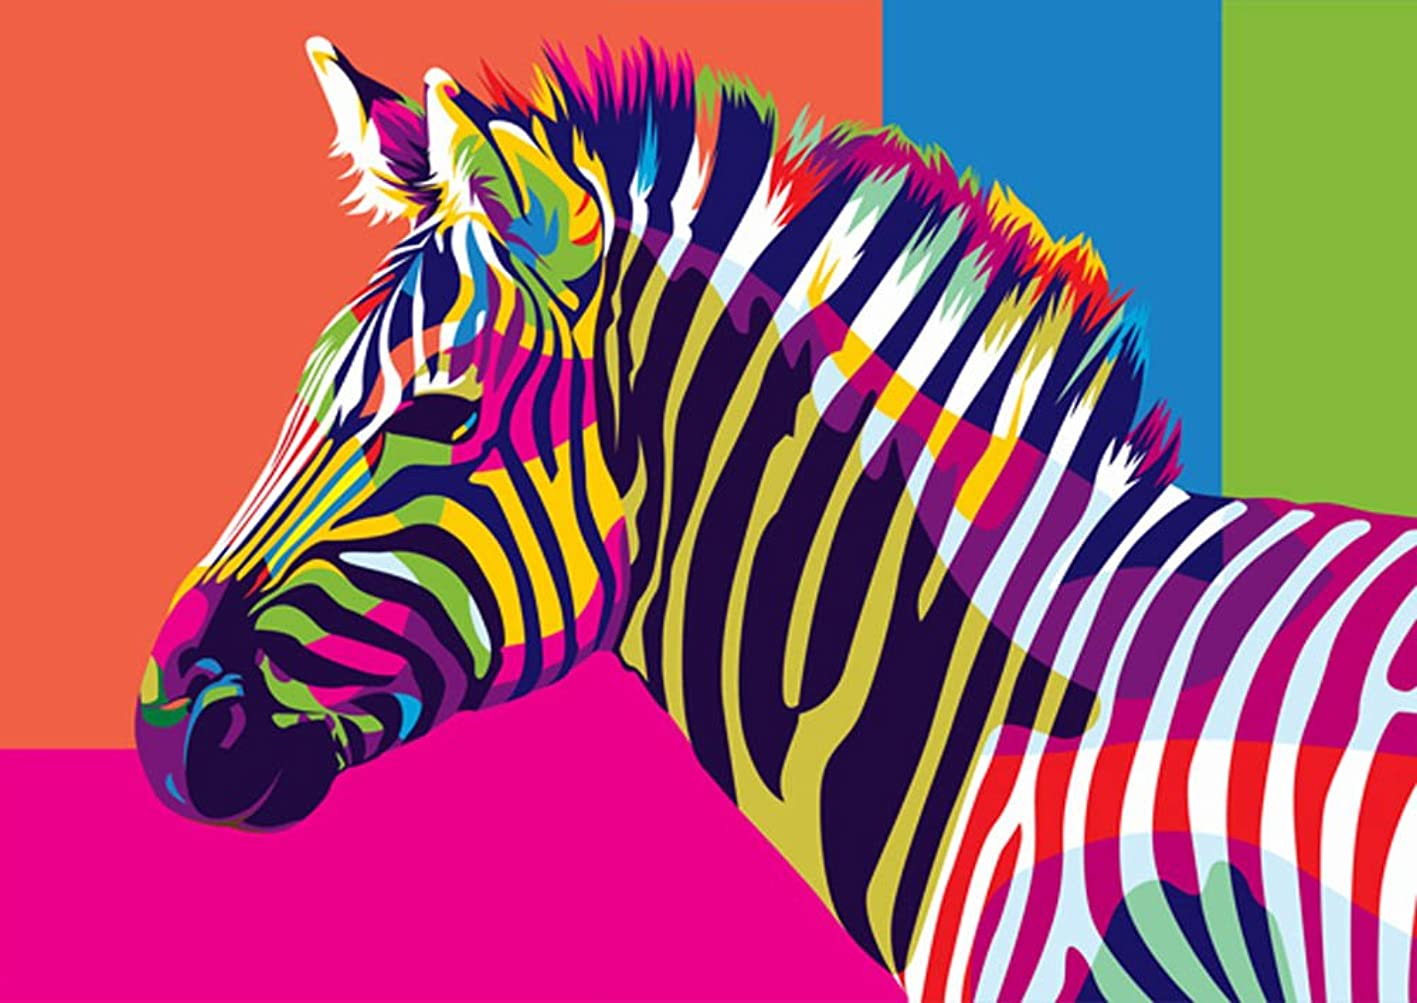 DIY Oil Painting Paint by Number Kit for Kids Adults Beginner 16x20 inch -Zebra,Drawing with Brushes Christmas Decor Decorations Gifts (Frame) pndprkjftil880